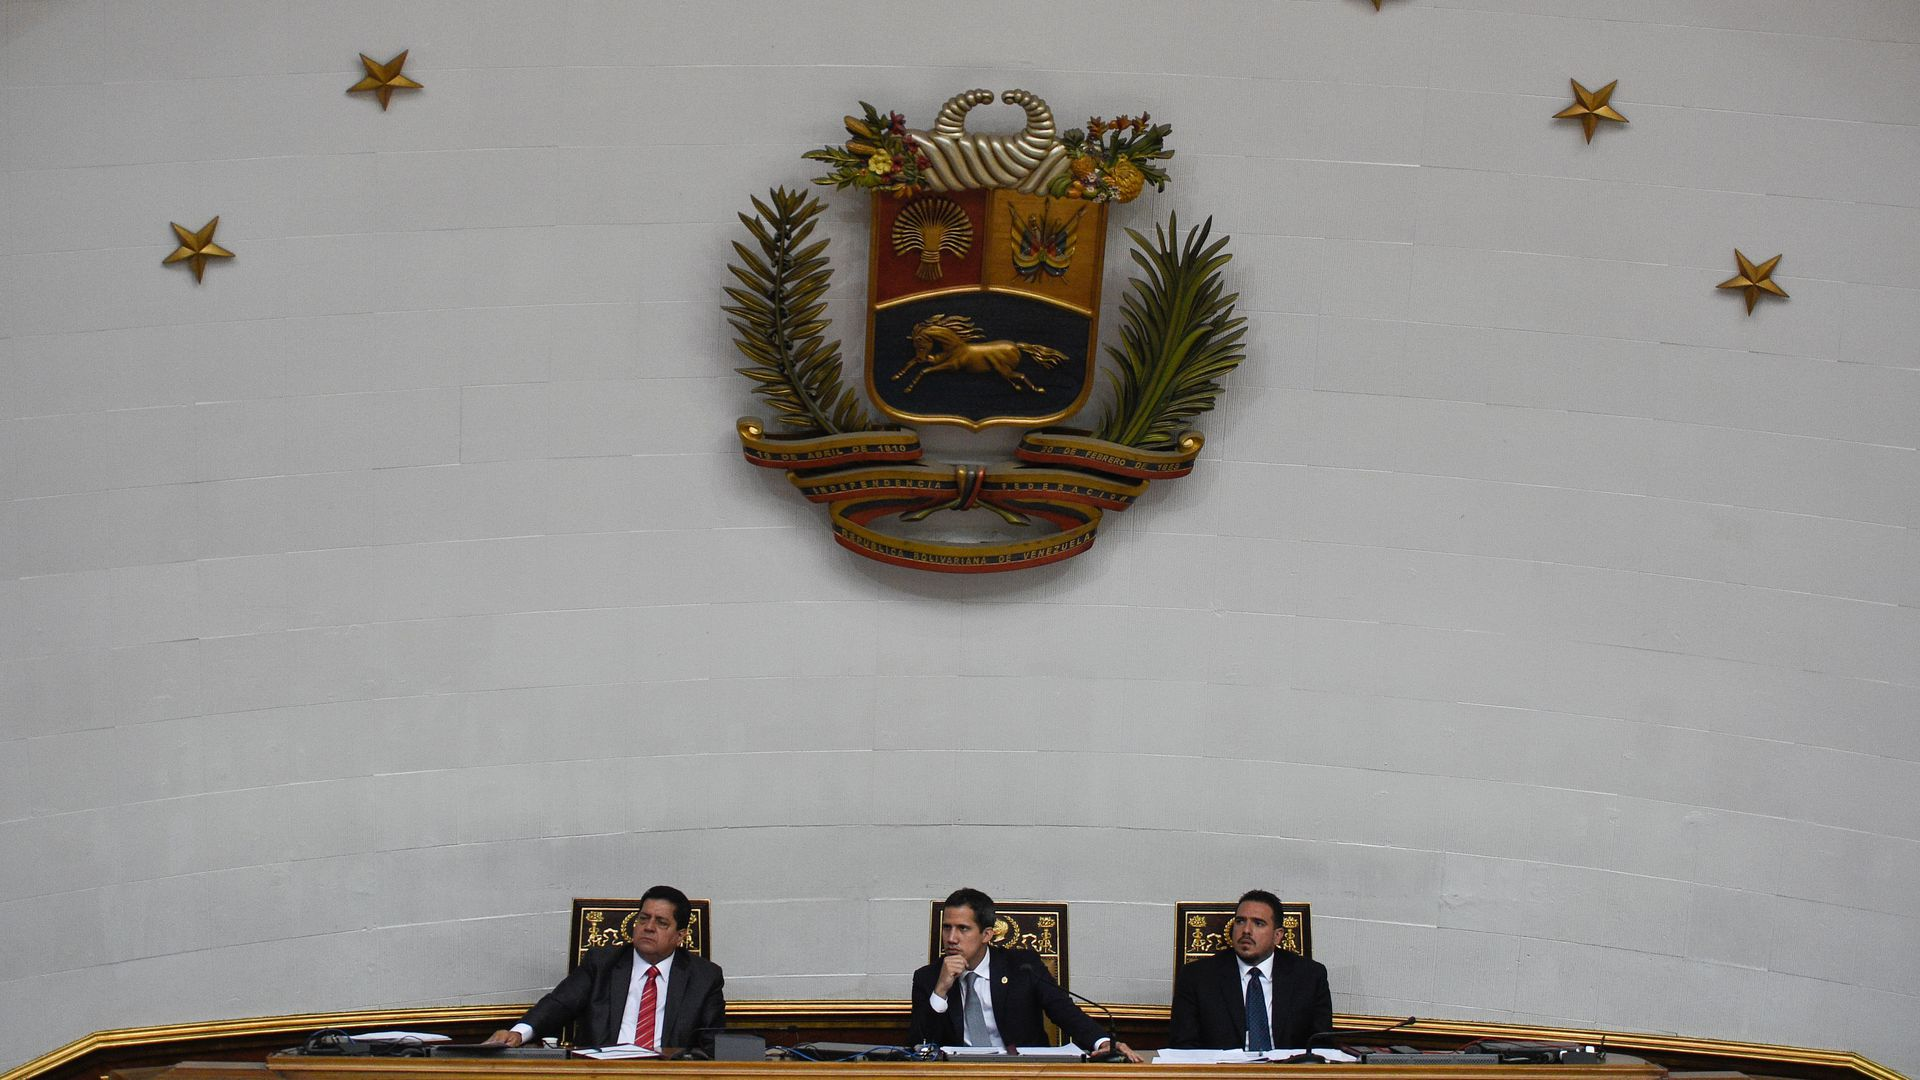 Juan Guaido sits with two other men at the National Assembly in Venezuela.